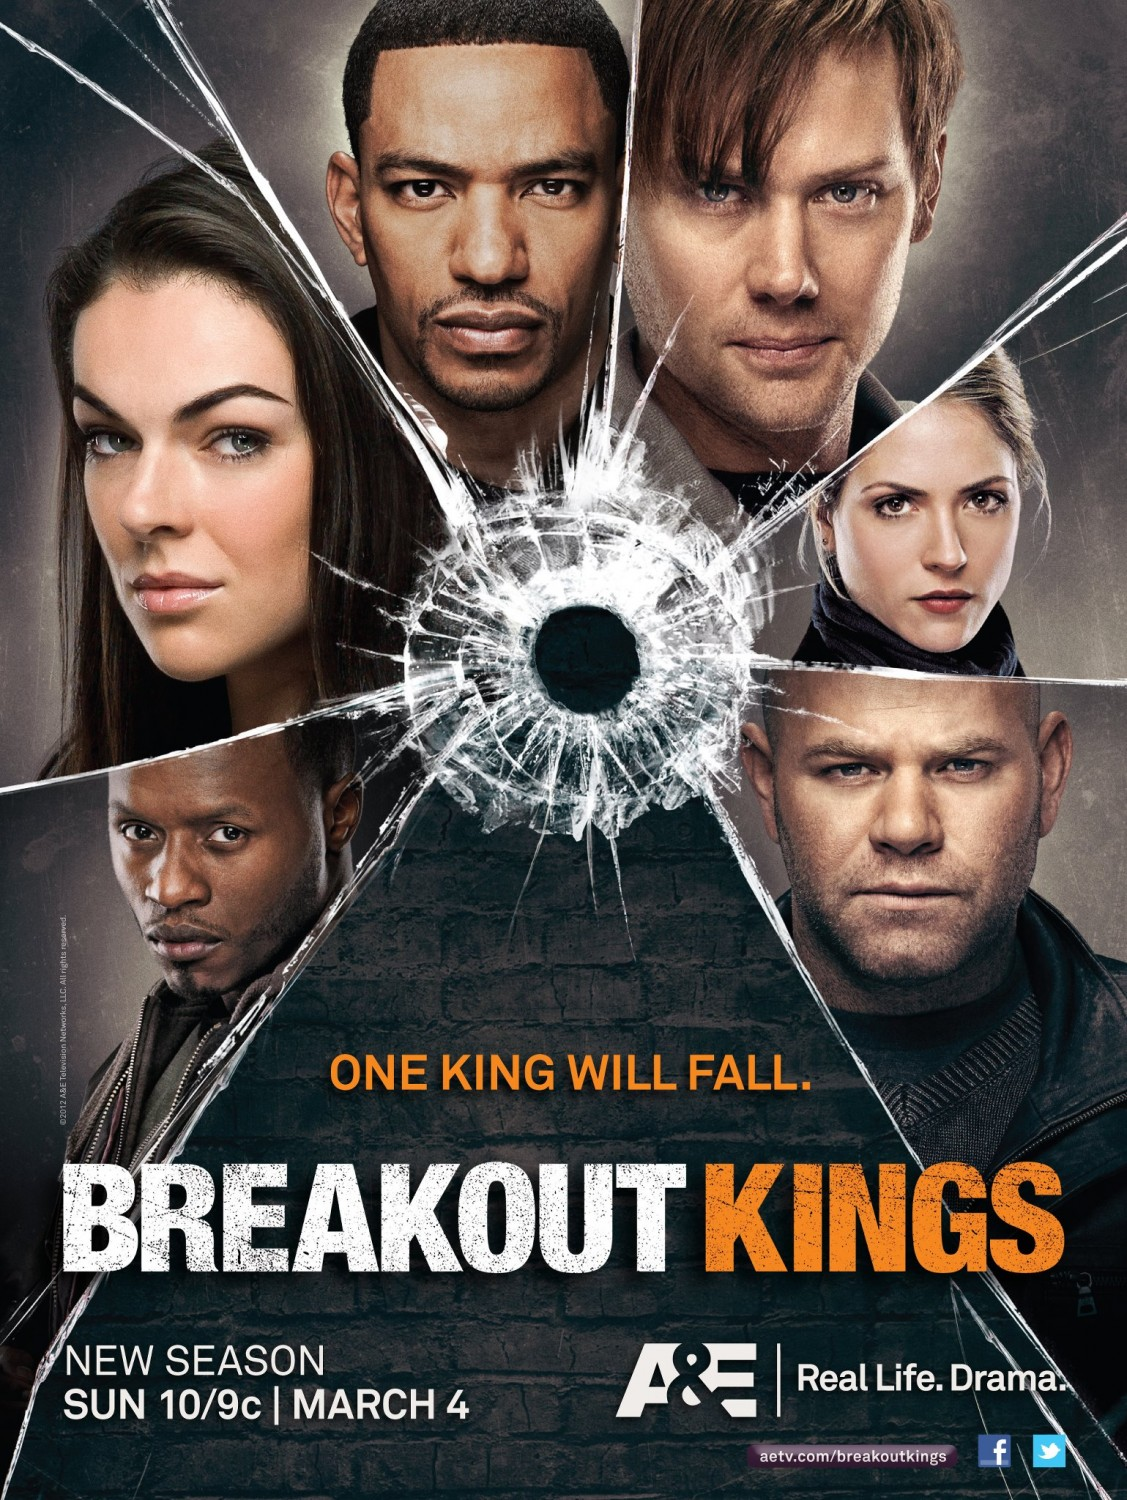 Breakout Kings S01 DVDRip | S02 HD Breakoutkingss2poster1